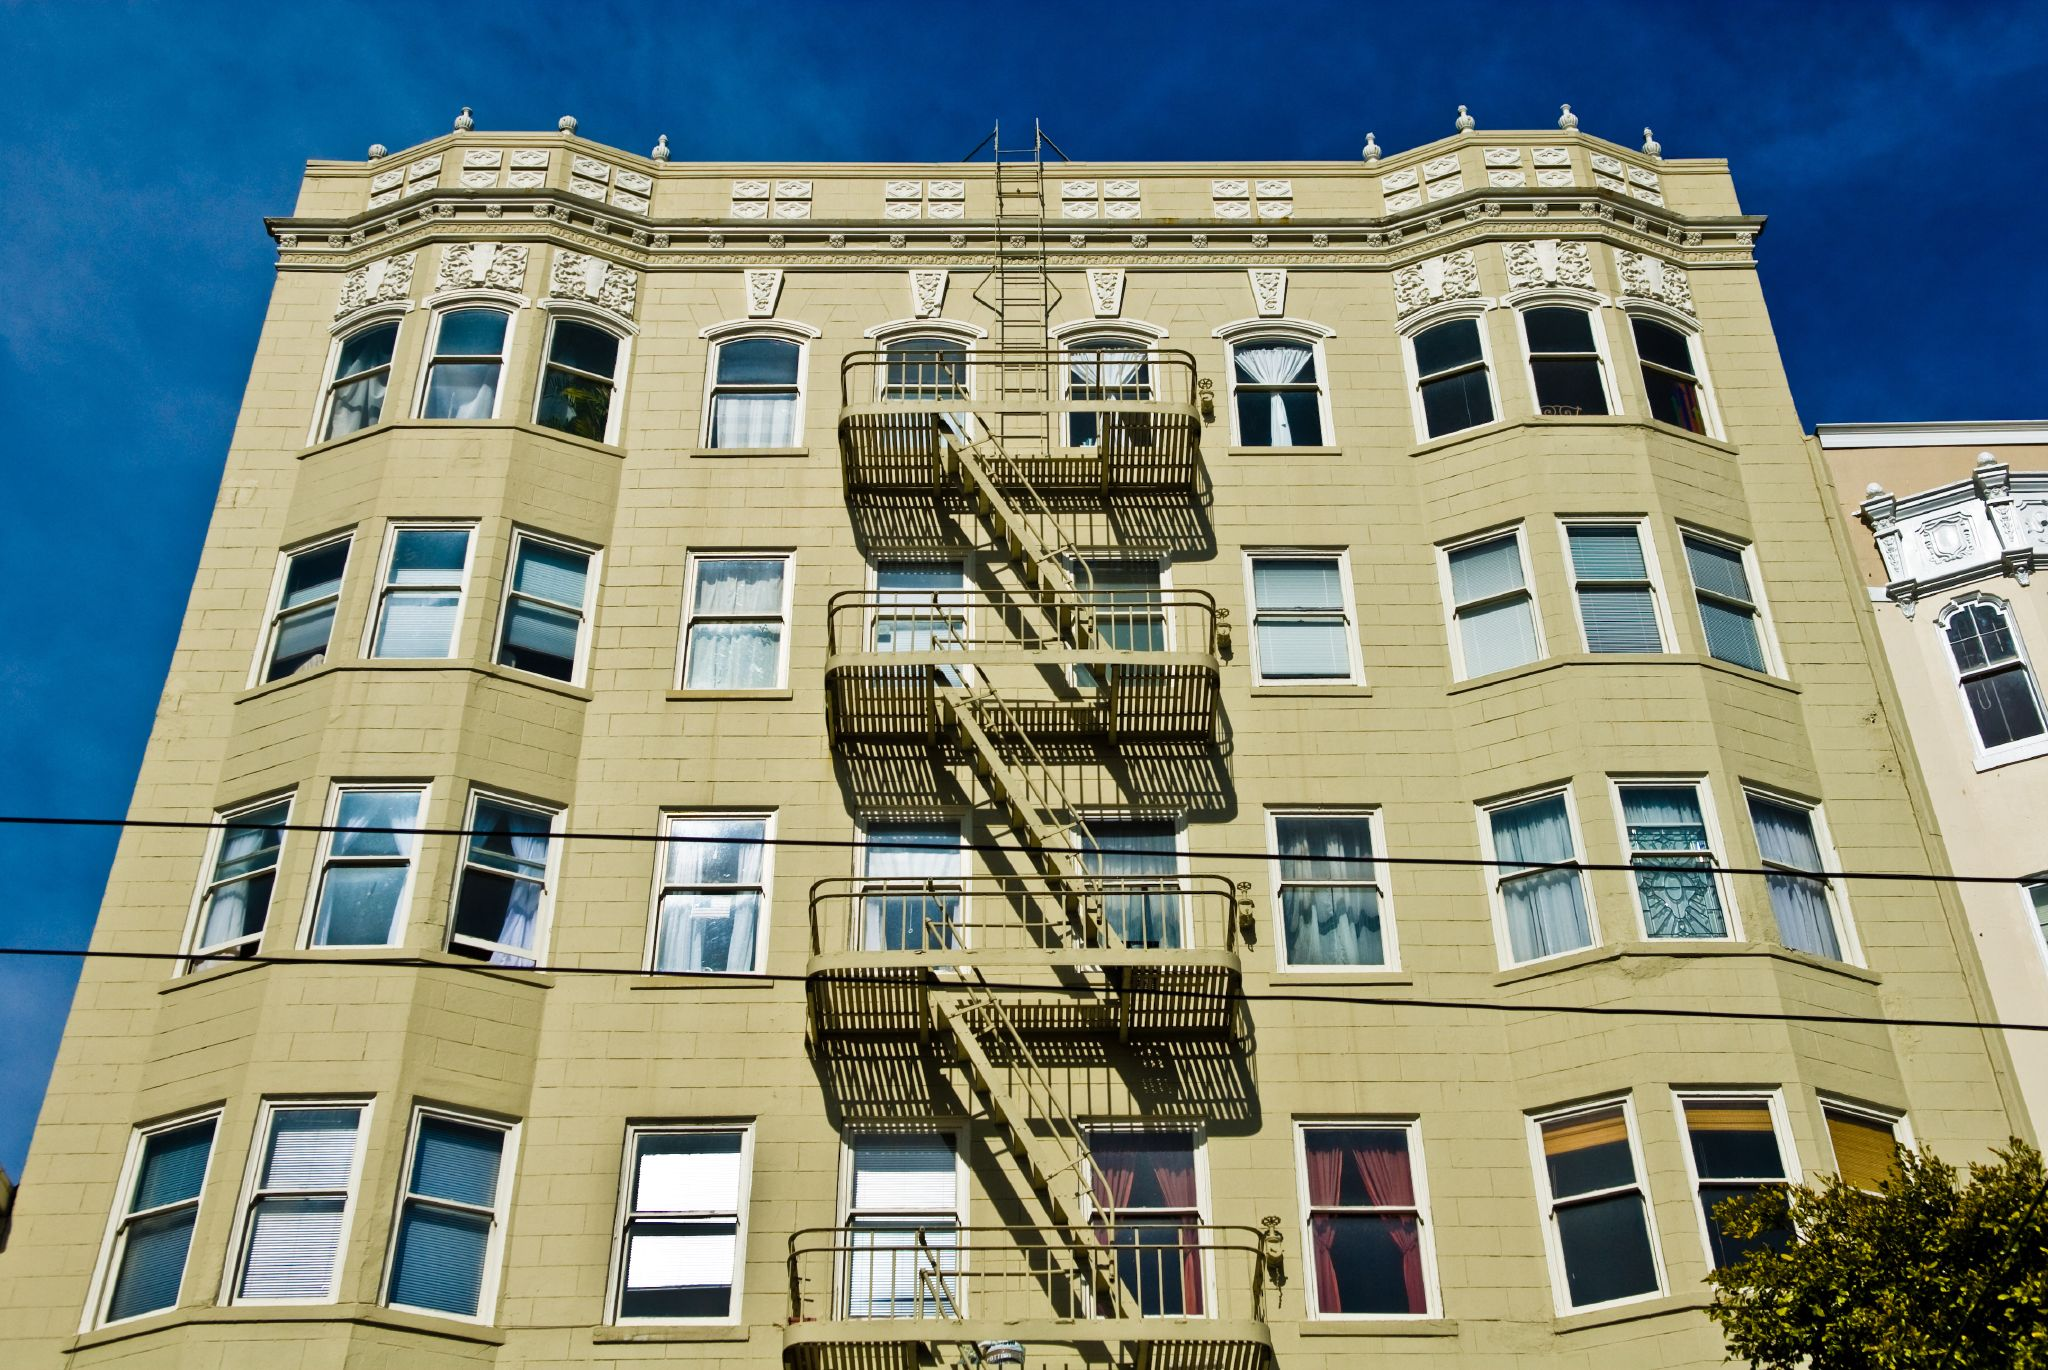 Photo of SF apartment building, 1920s Art Deco number.